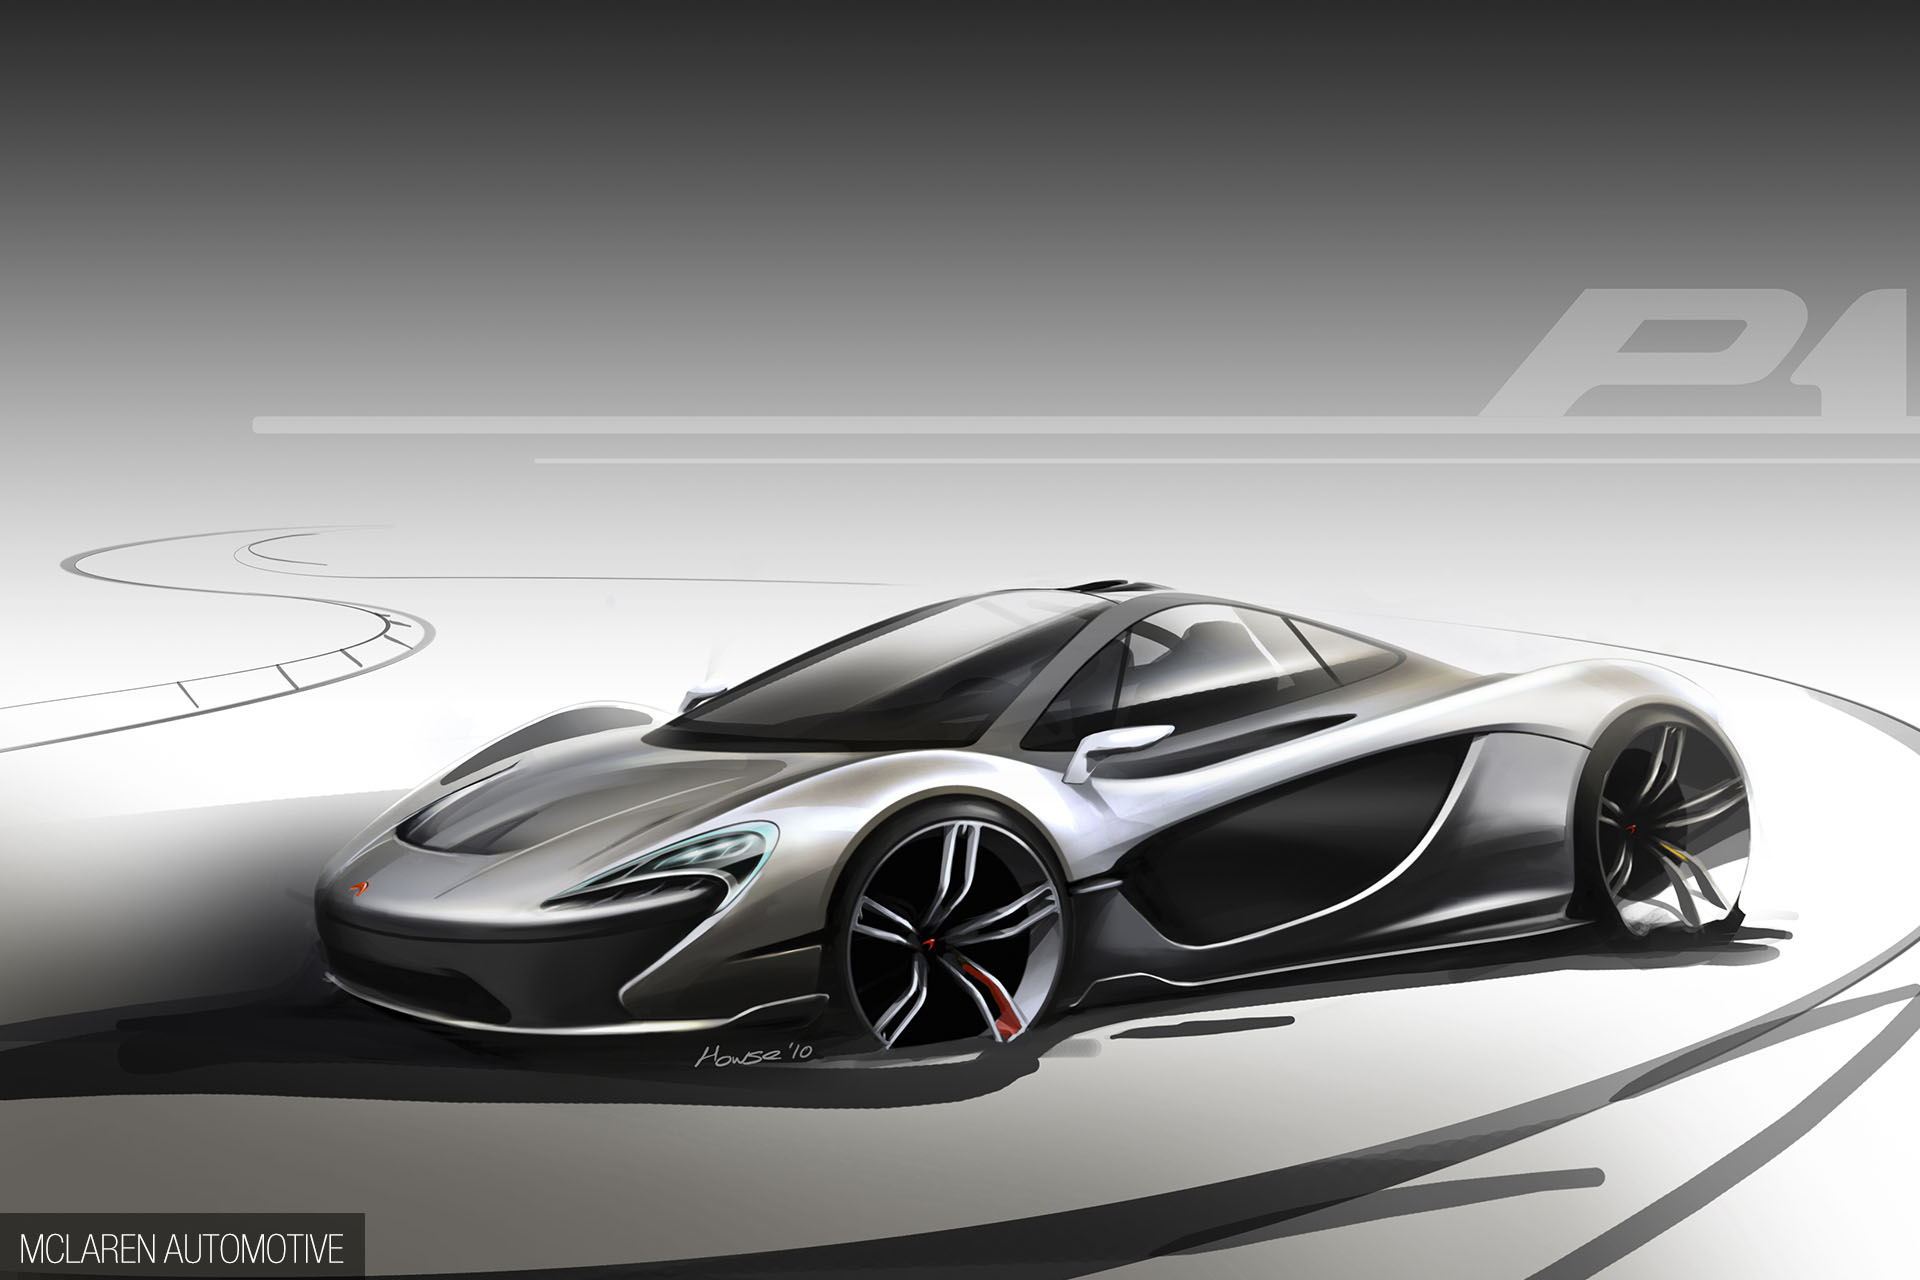 McLaren P1 - 2012 - sketch - front design by Howse